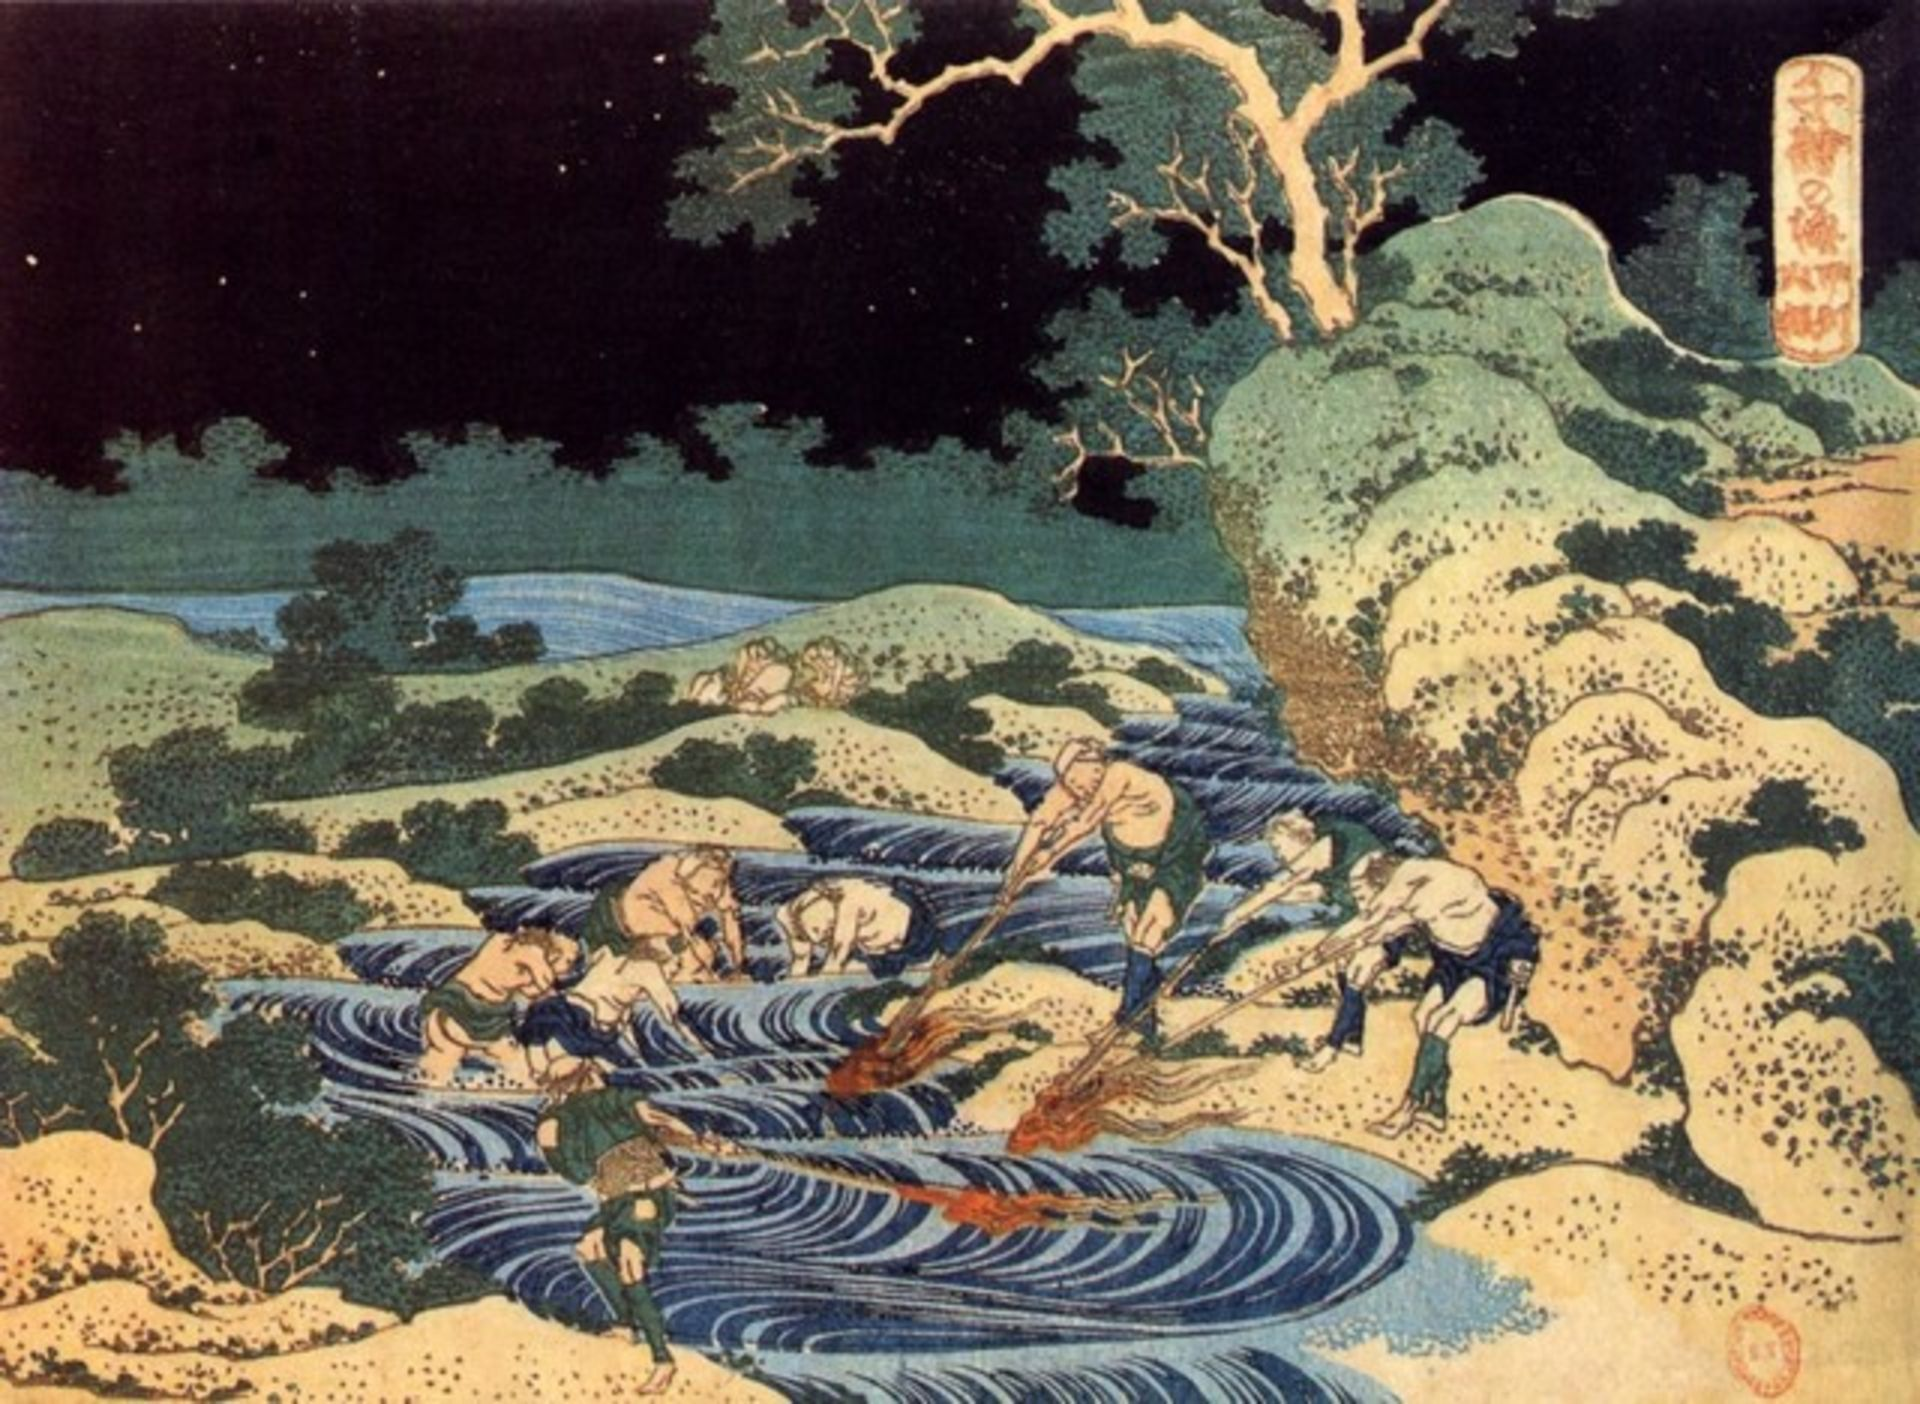 Hokusai - Fishing with Torches - Image 2 of 2